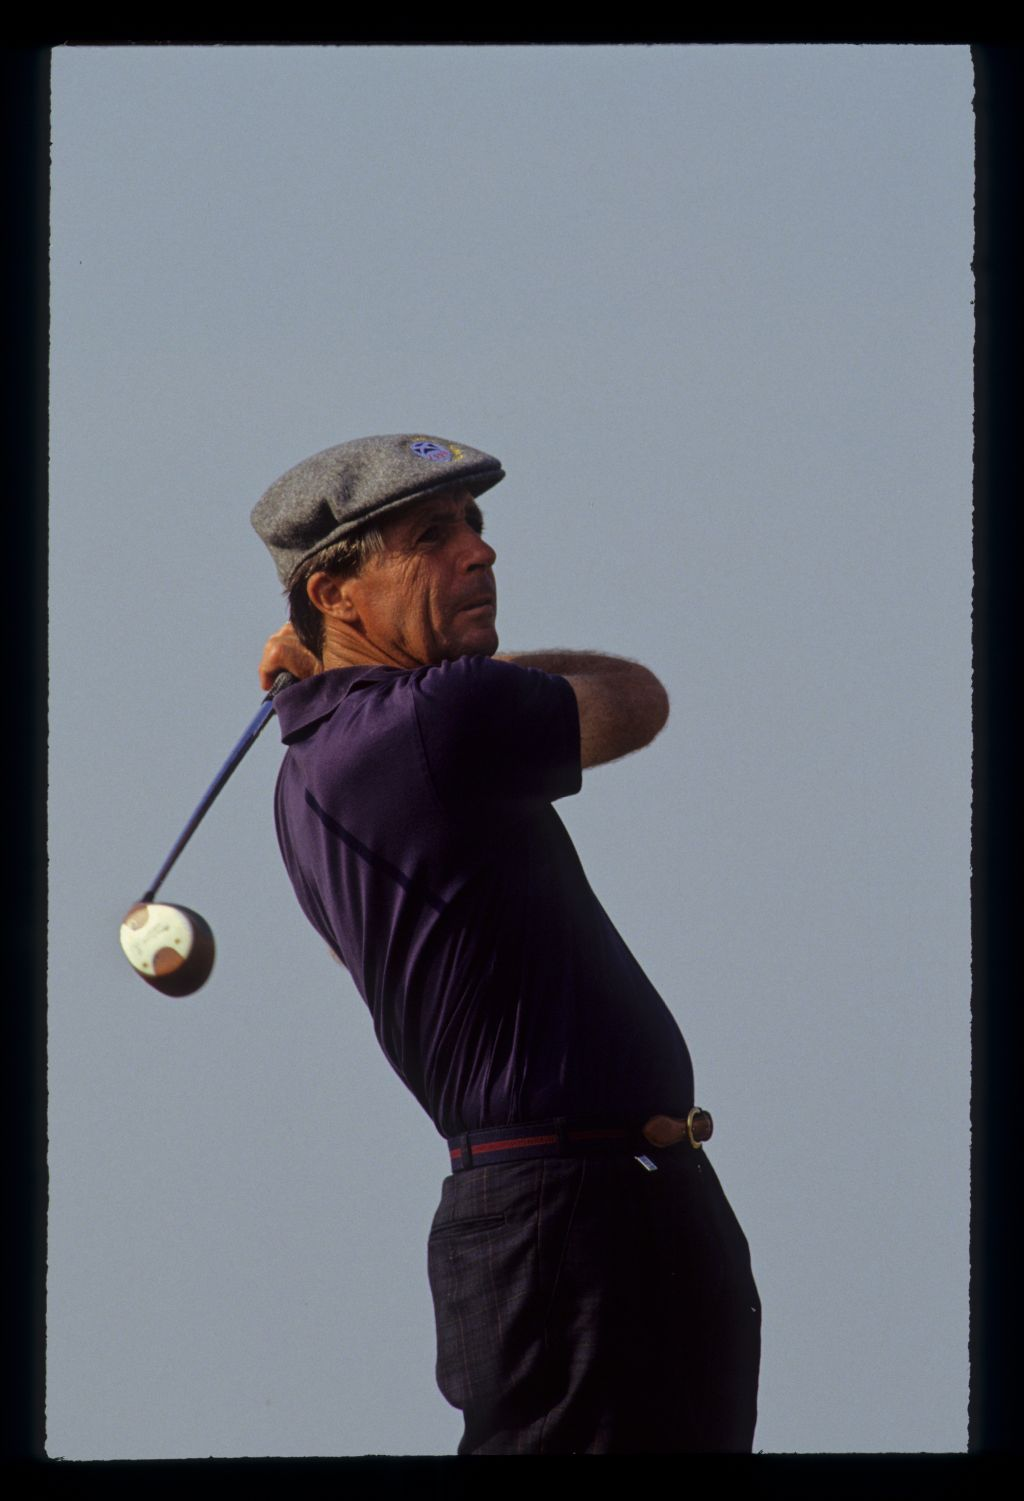 Gary Player hands high on the tee during the 1990 Open Championship